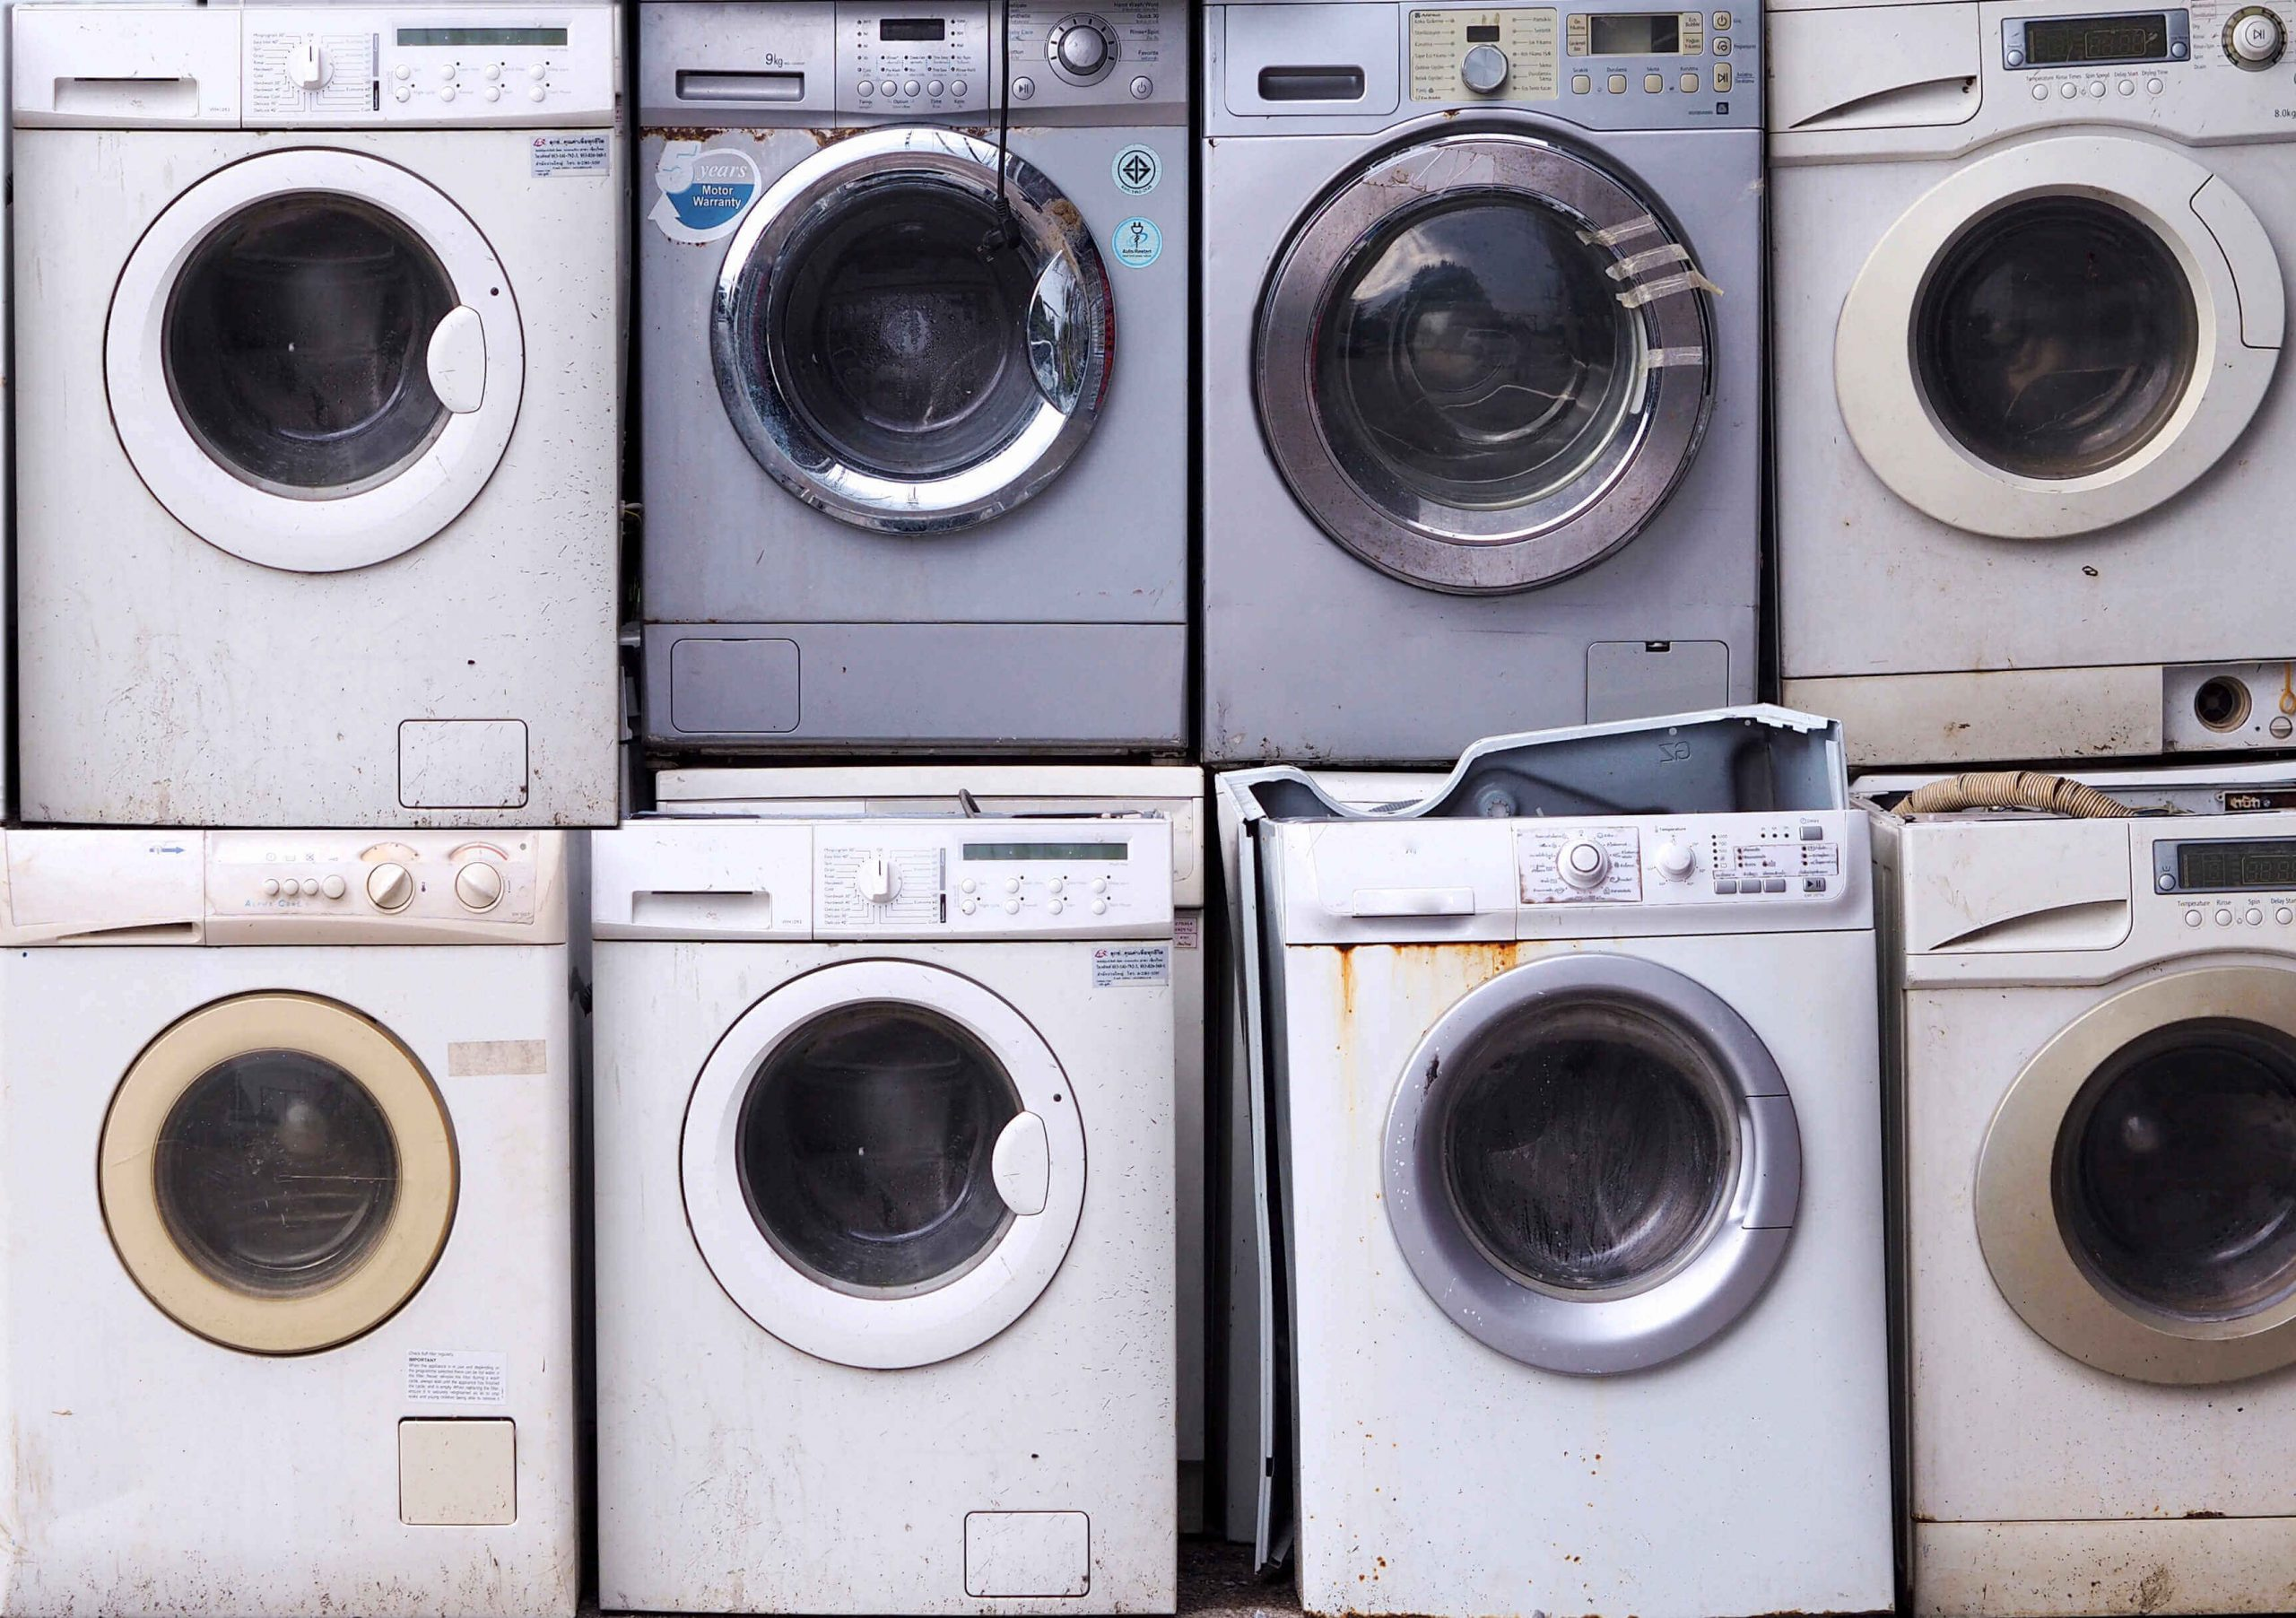 Washing Machine and Dryer Removal